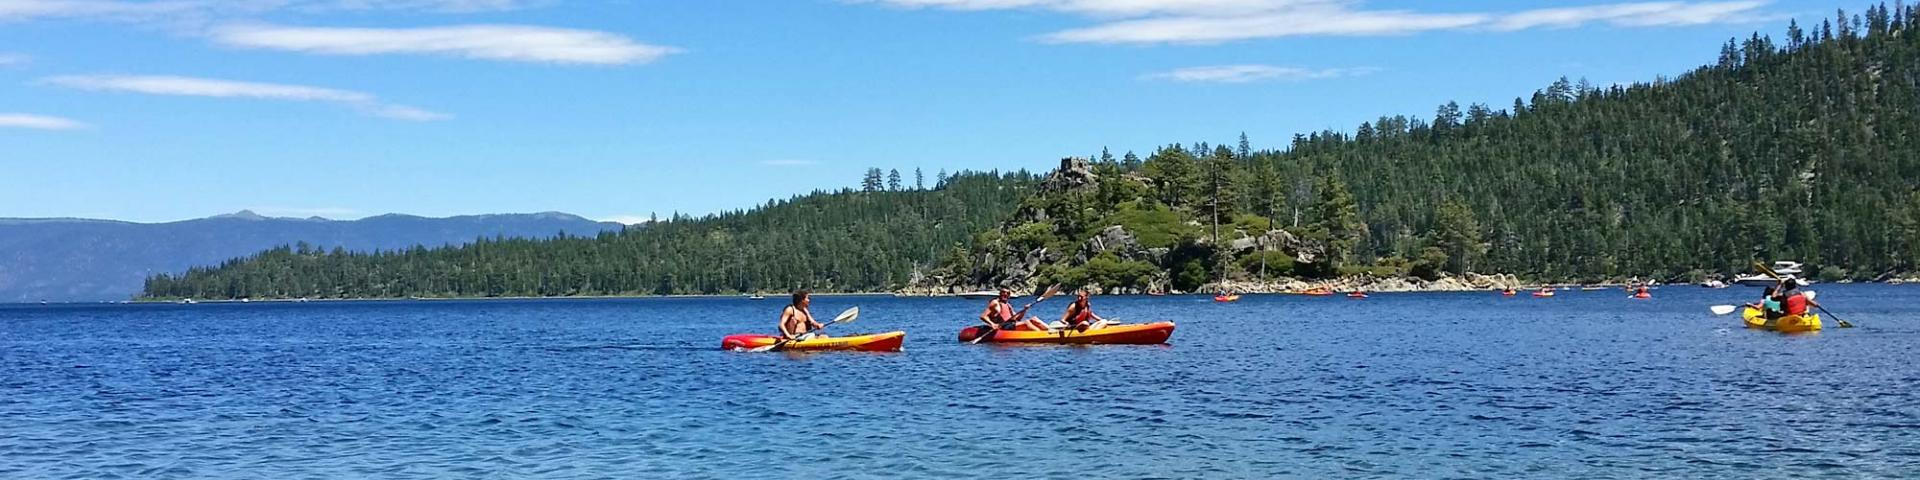 Lake Tahoe summer kayaks Emerald Bay